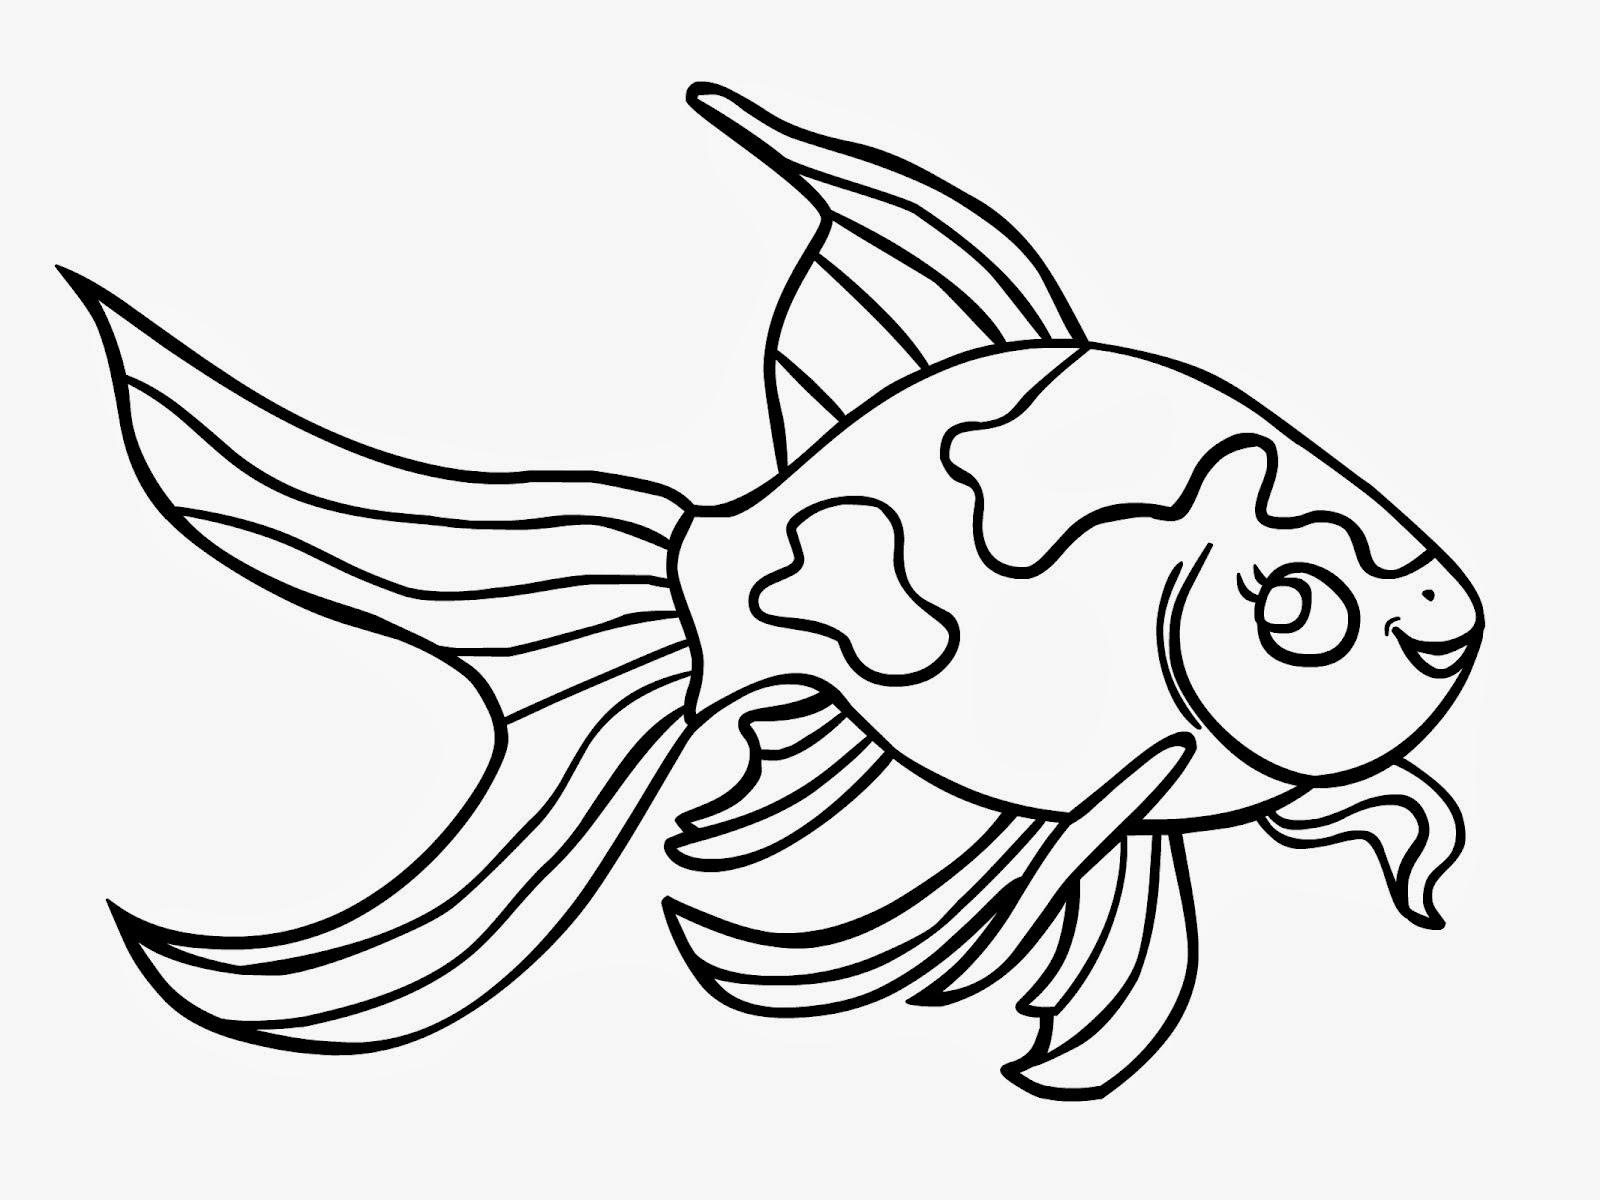 Goldfish clipart black and white » Clipart Station.